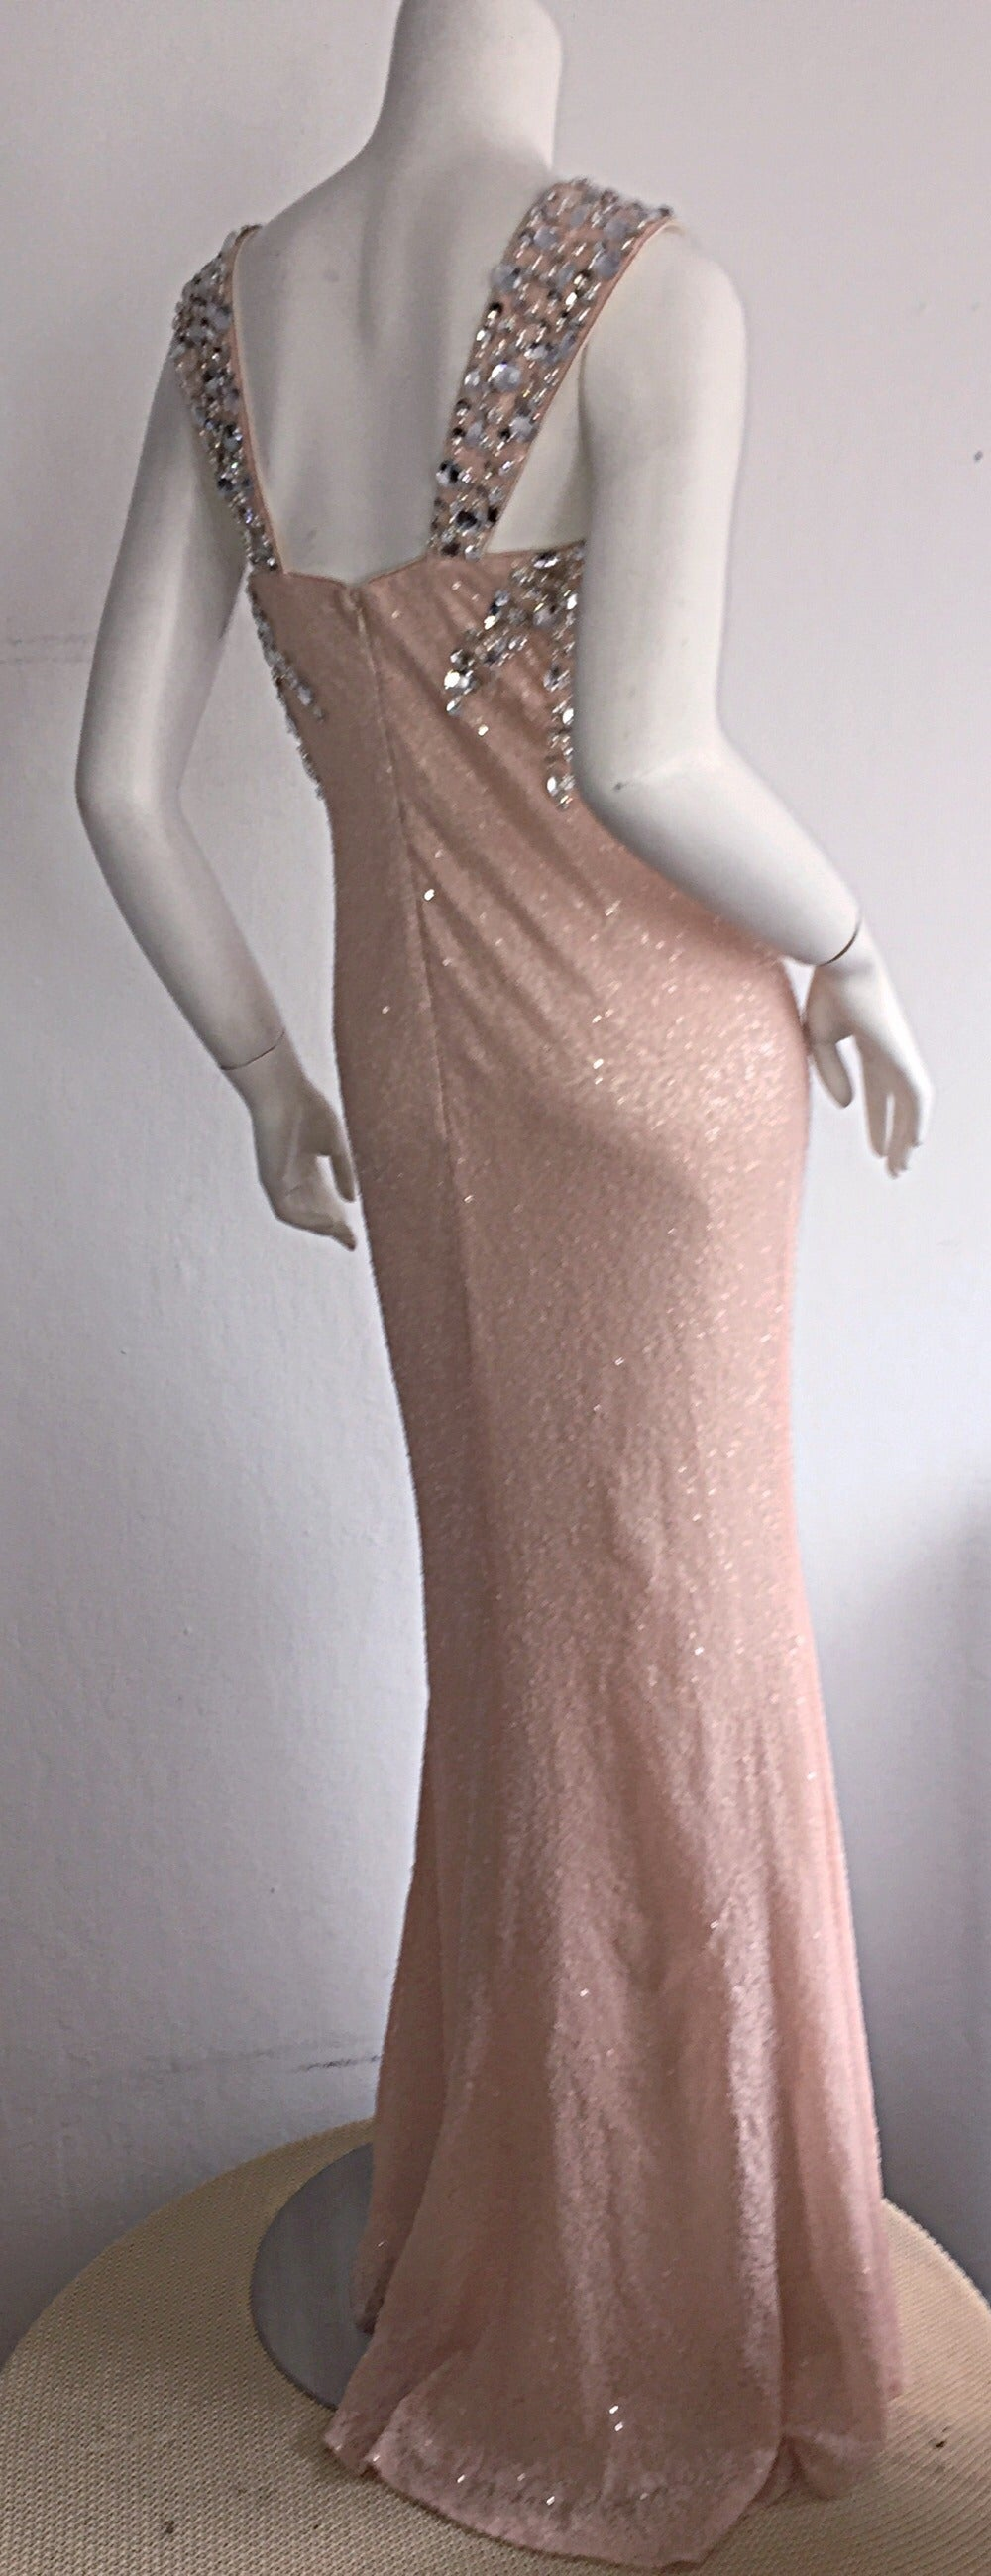 Stunning Early 1990s Custom All Over Sequin + Crystals Pink Vintage Mermaid Gown 3